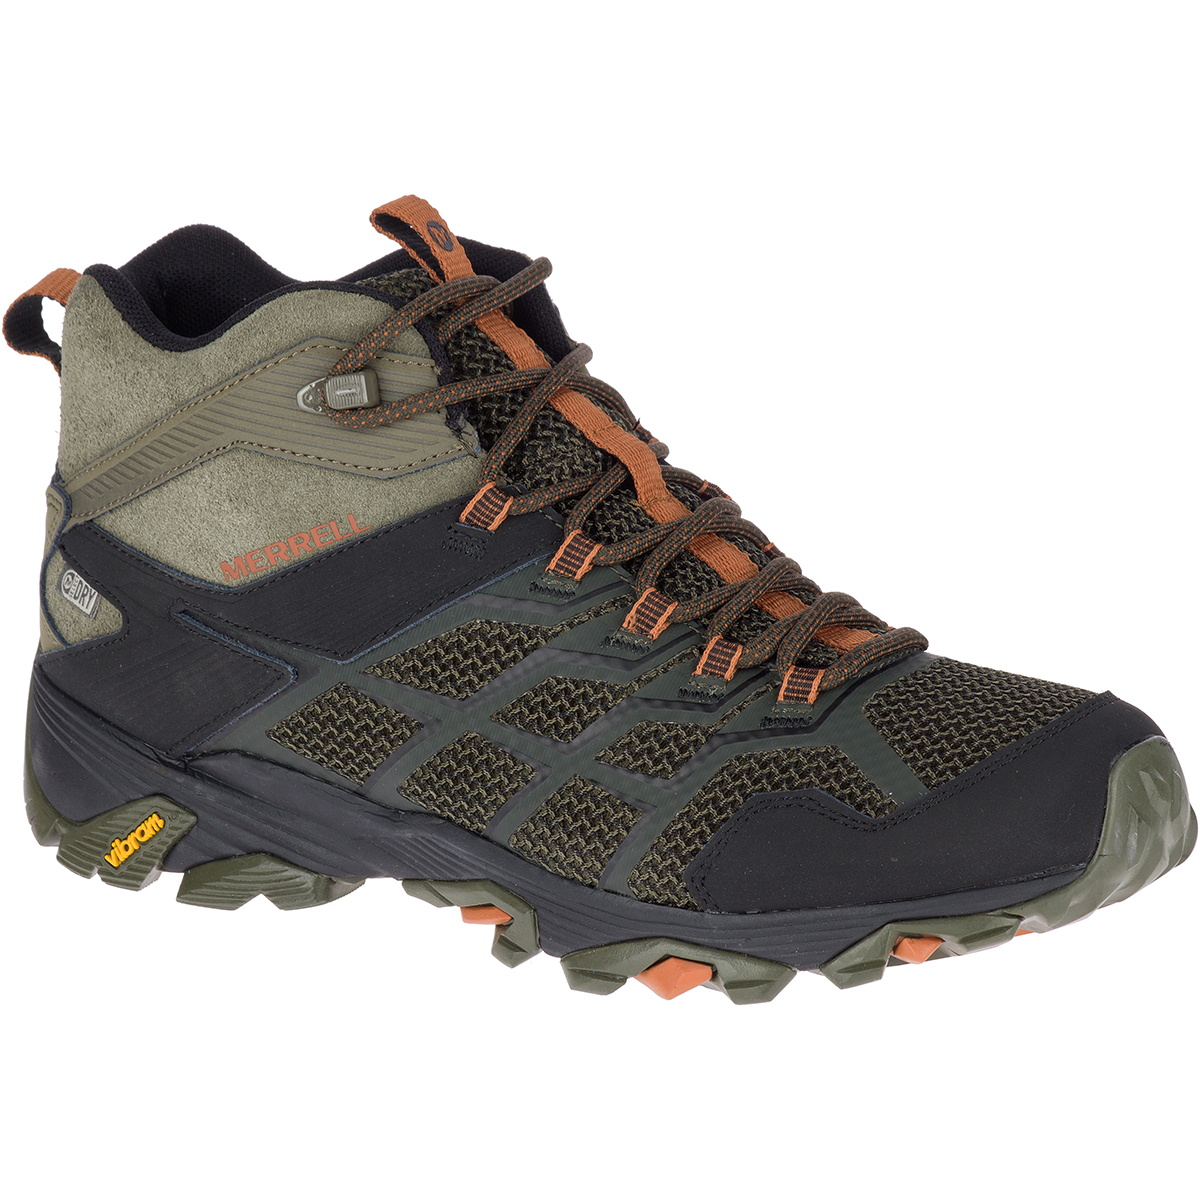 Merrell Men's Moab Fst 2 Mid Waterproof Hiking Boots - Green, 10